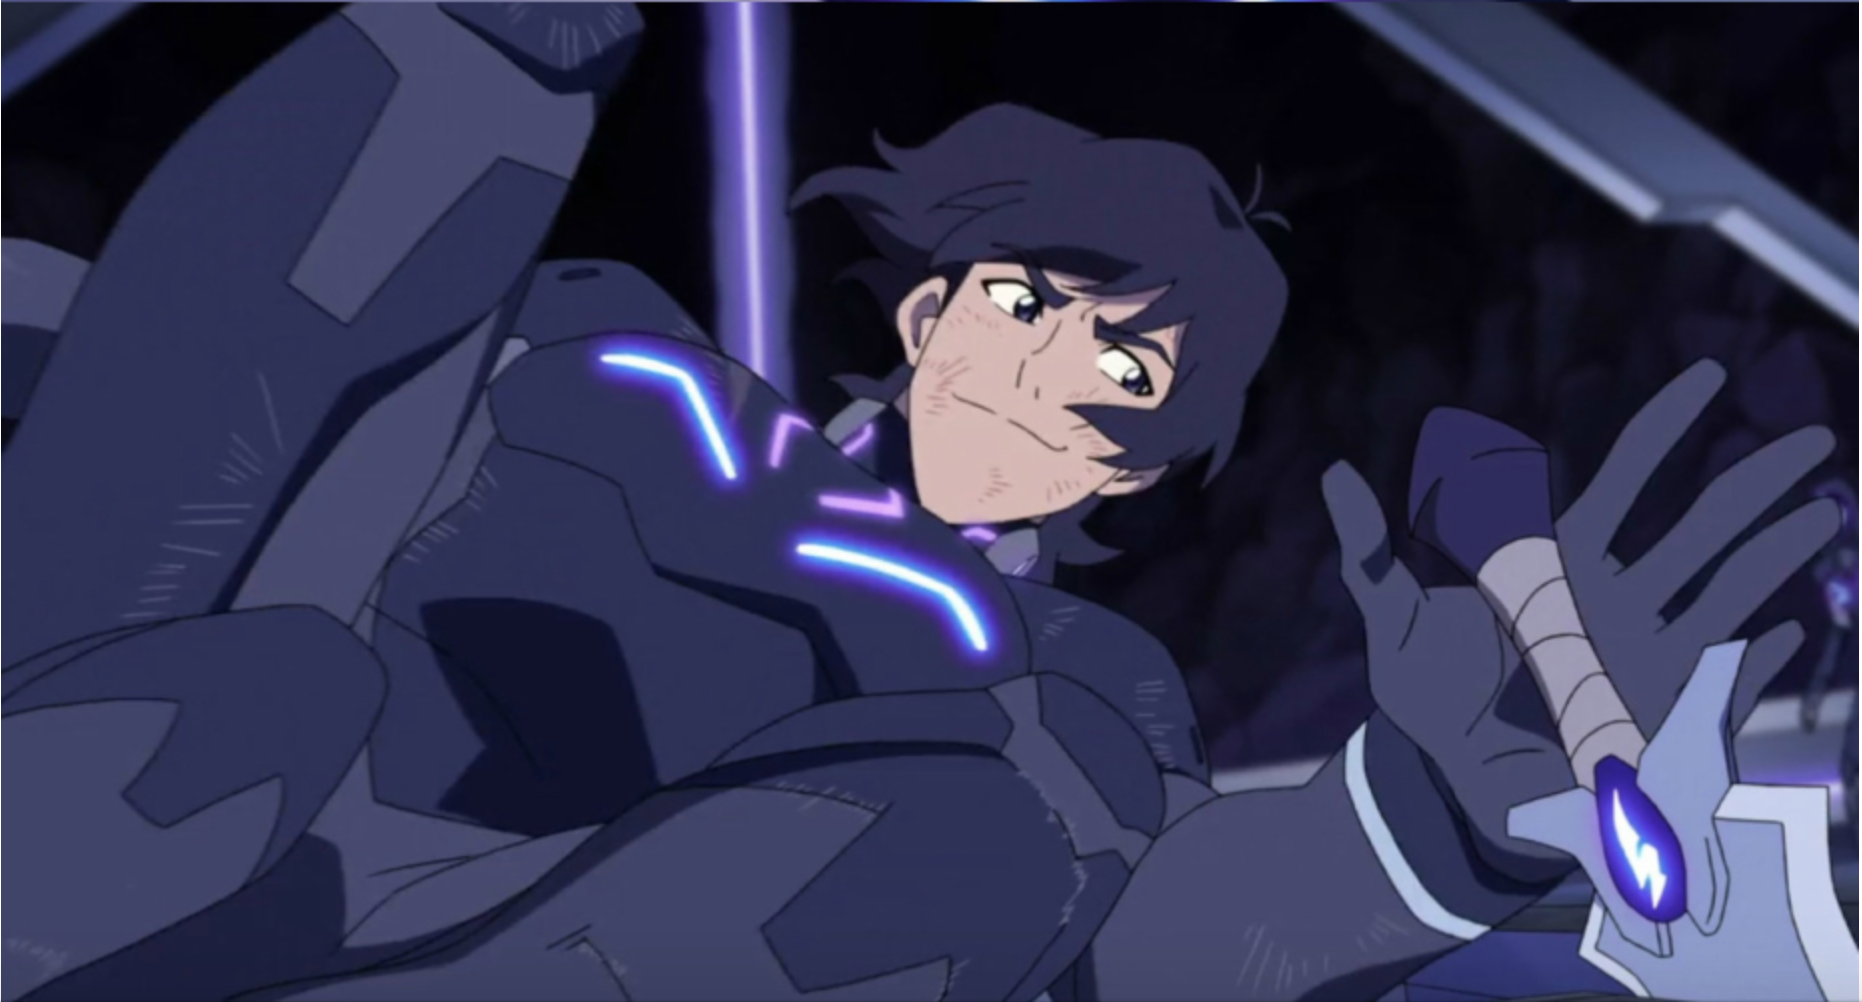 Keith in his Galra armor in a challenge battle from Voltron Legendary Defender season 2